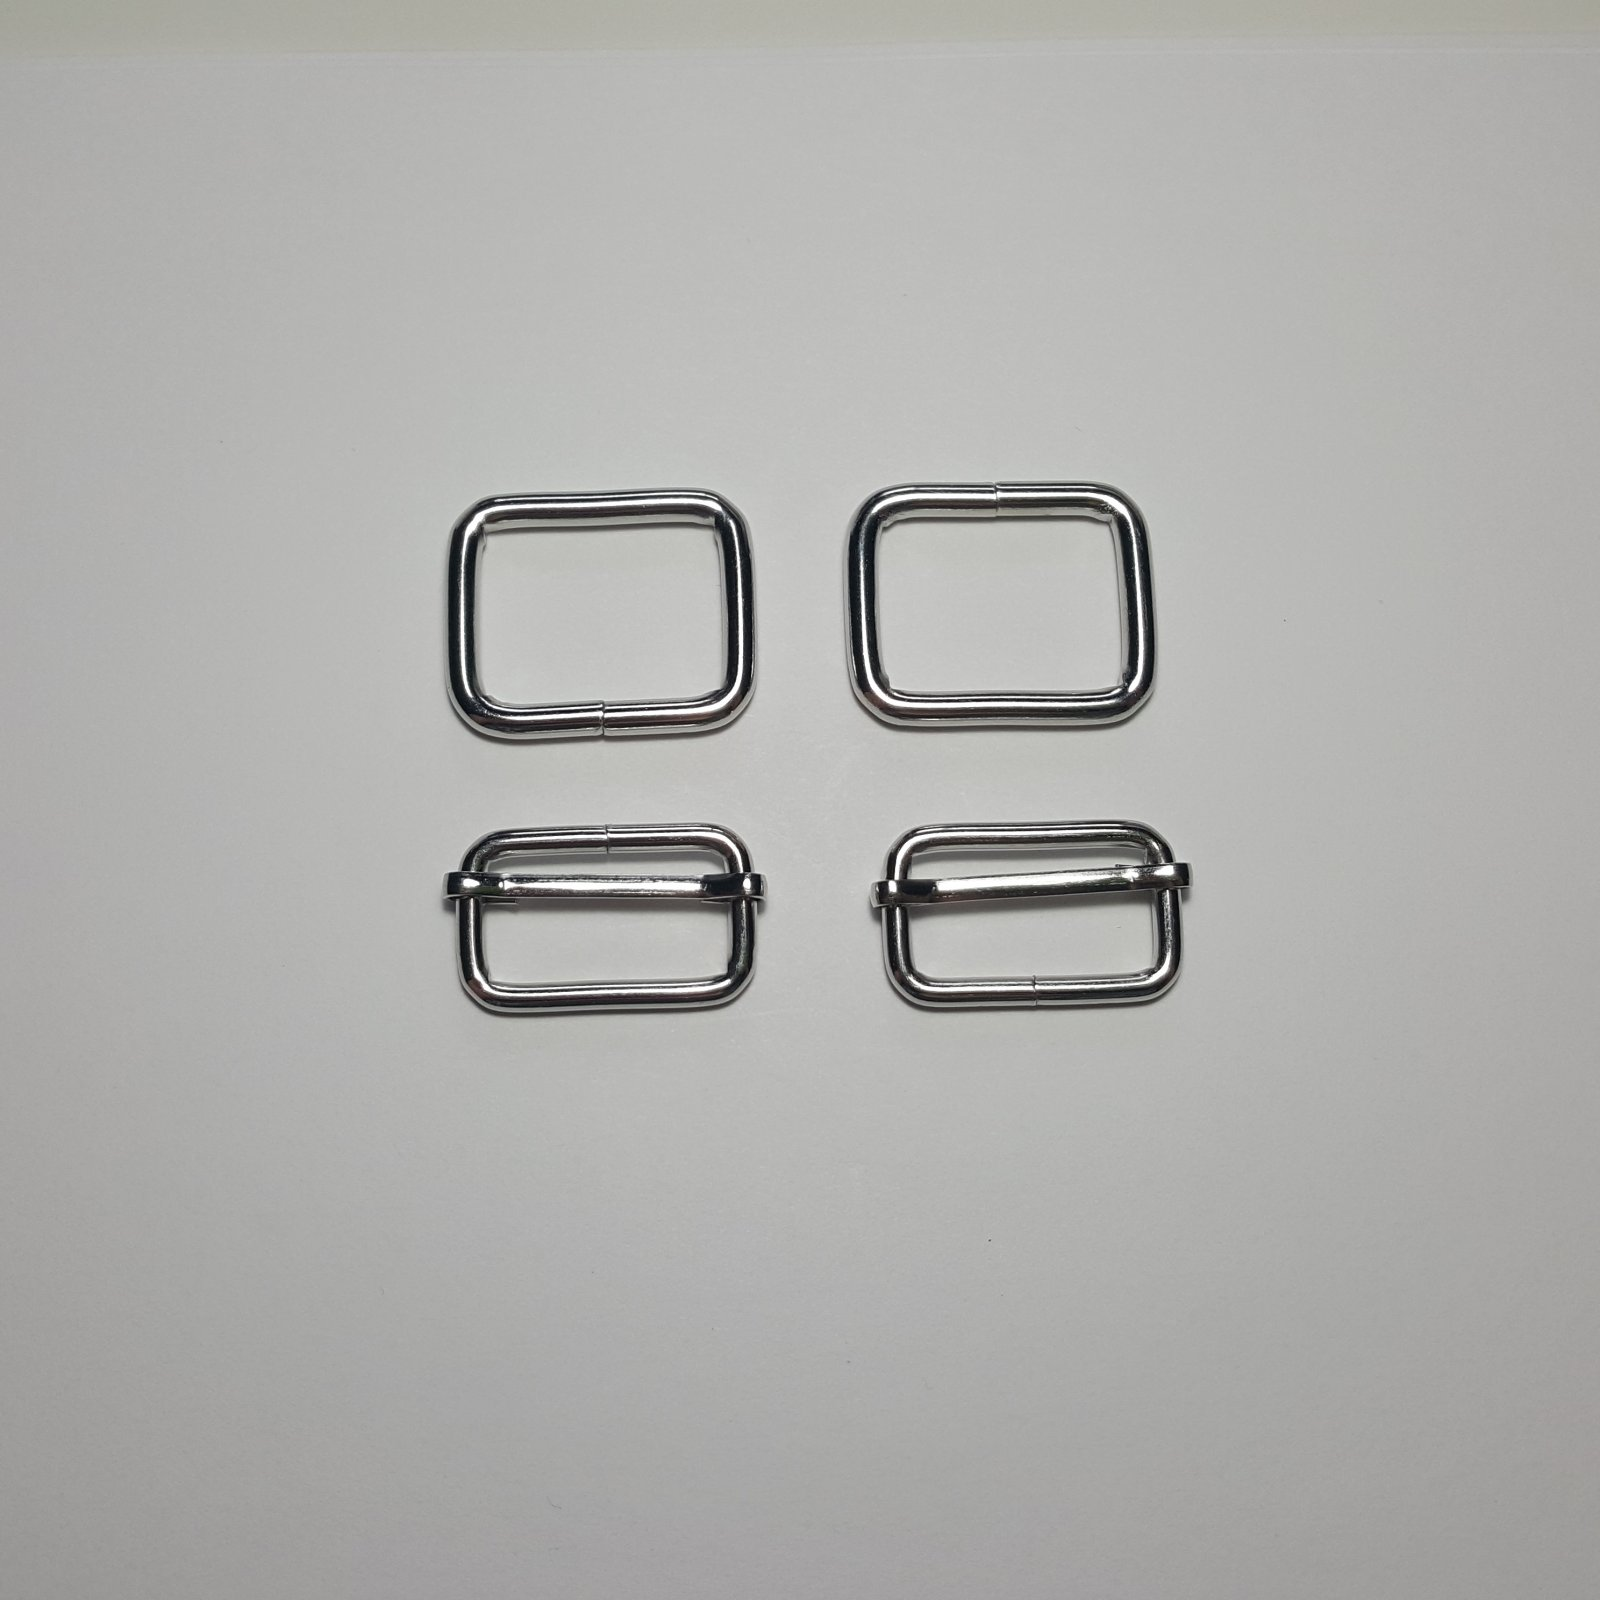 1- 2 Rectangle Rings + 2 Slides - Nickel